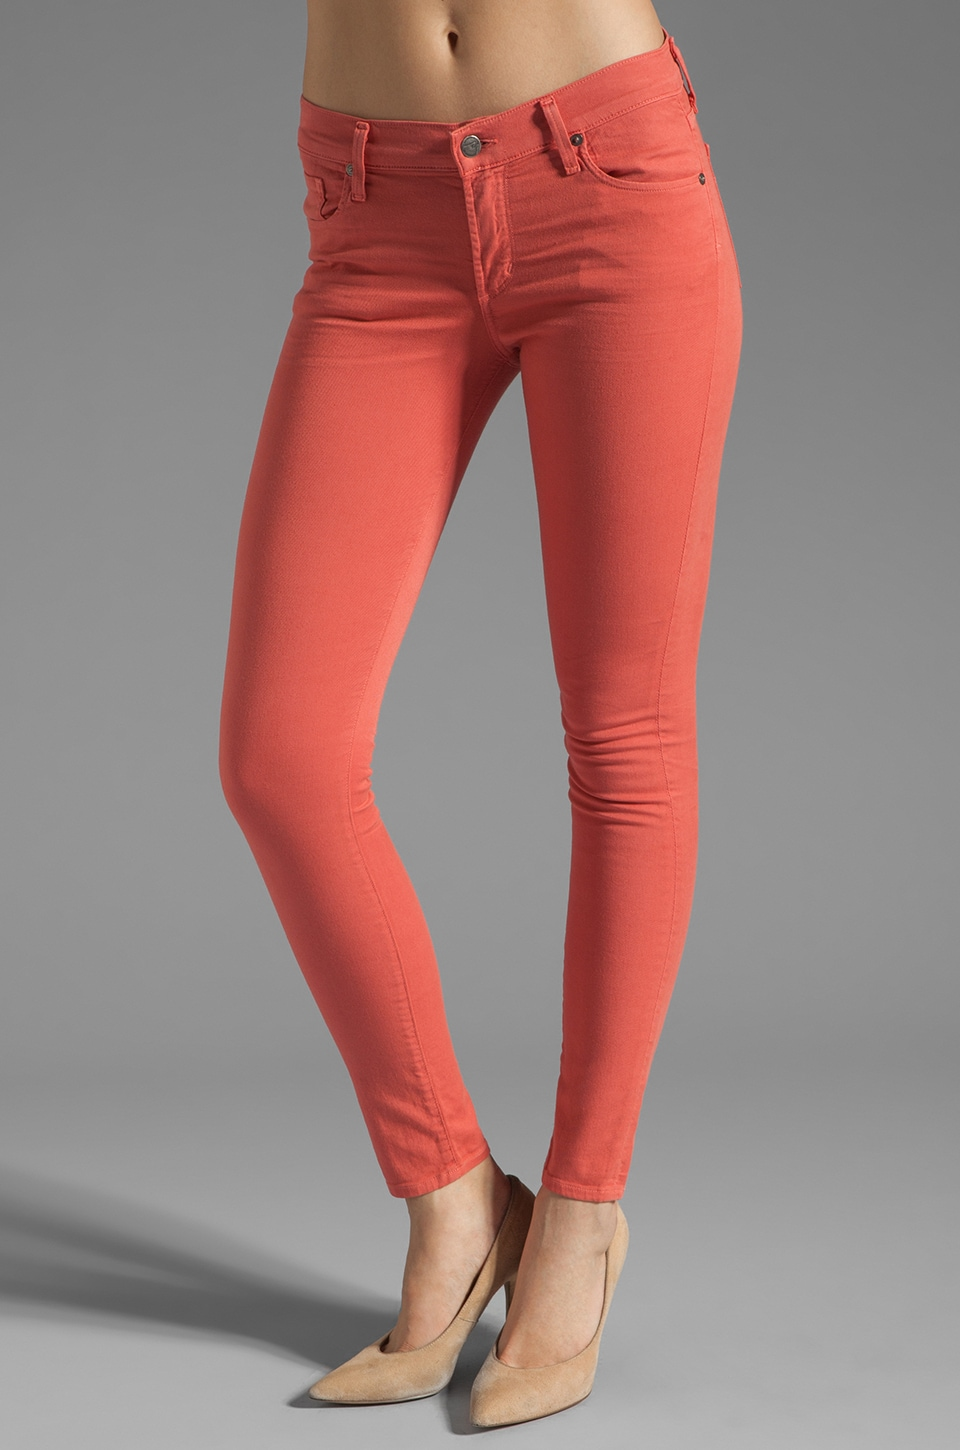 Citizens of Humanity Thompson Twill Ankle Skinny in Watermelon